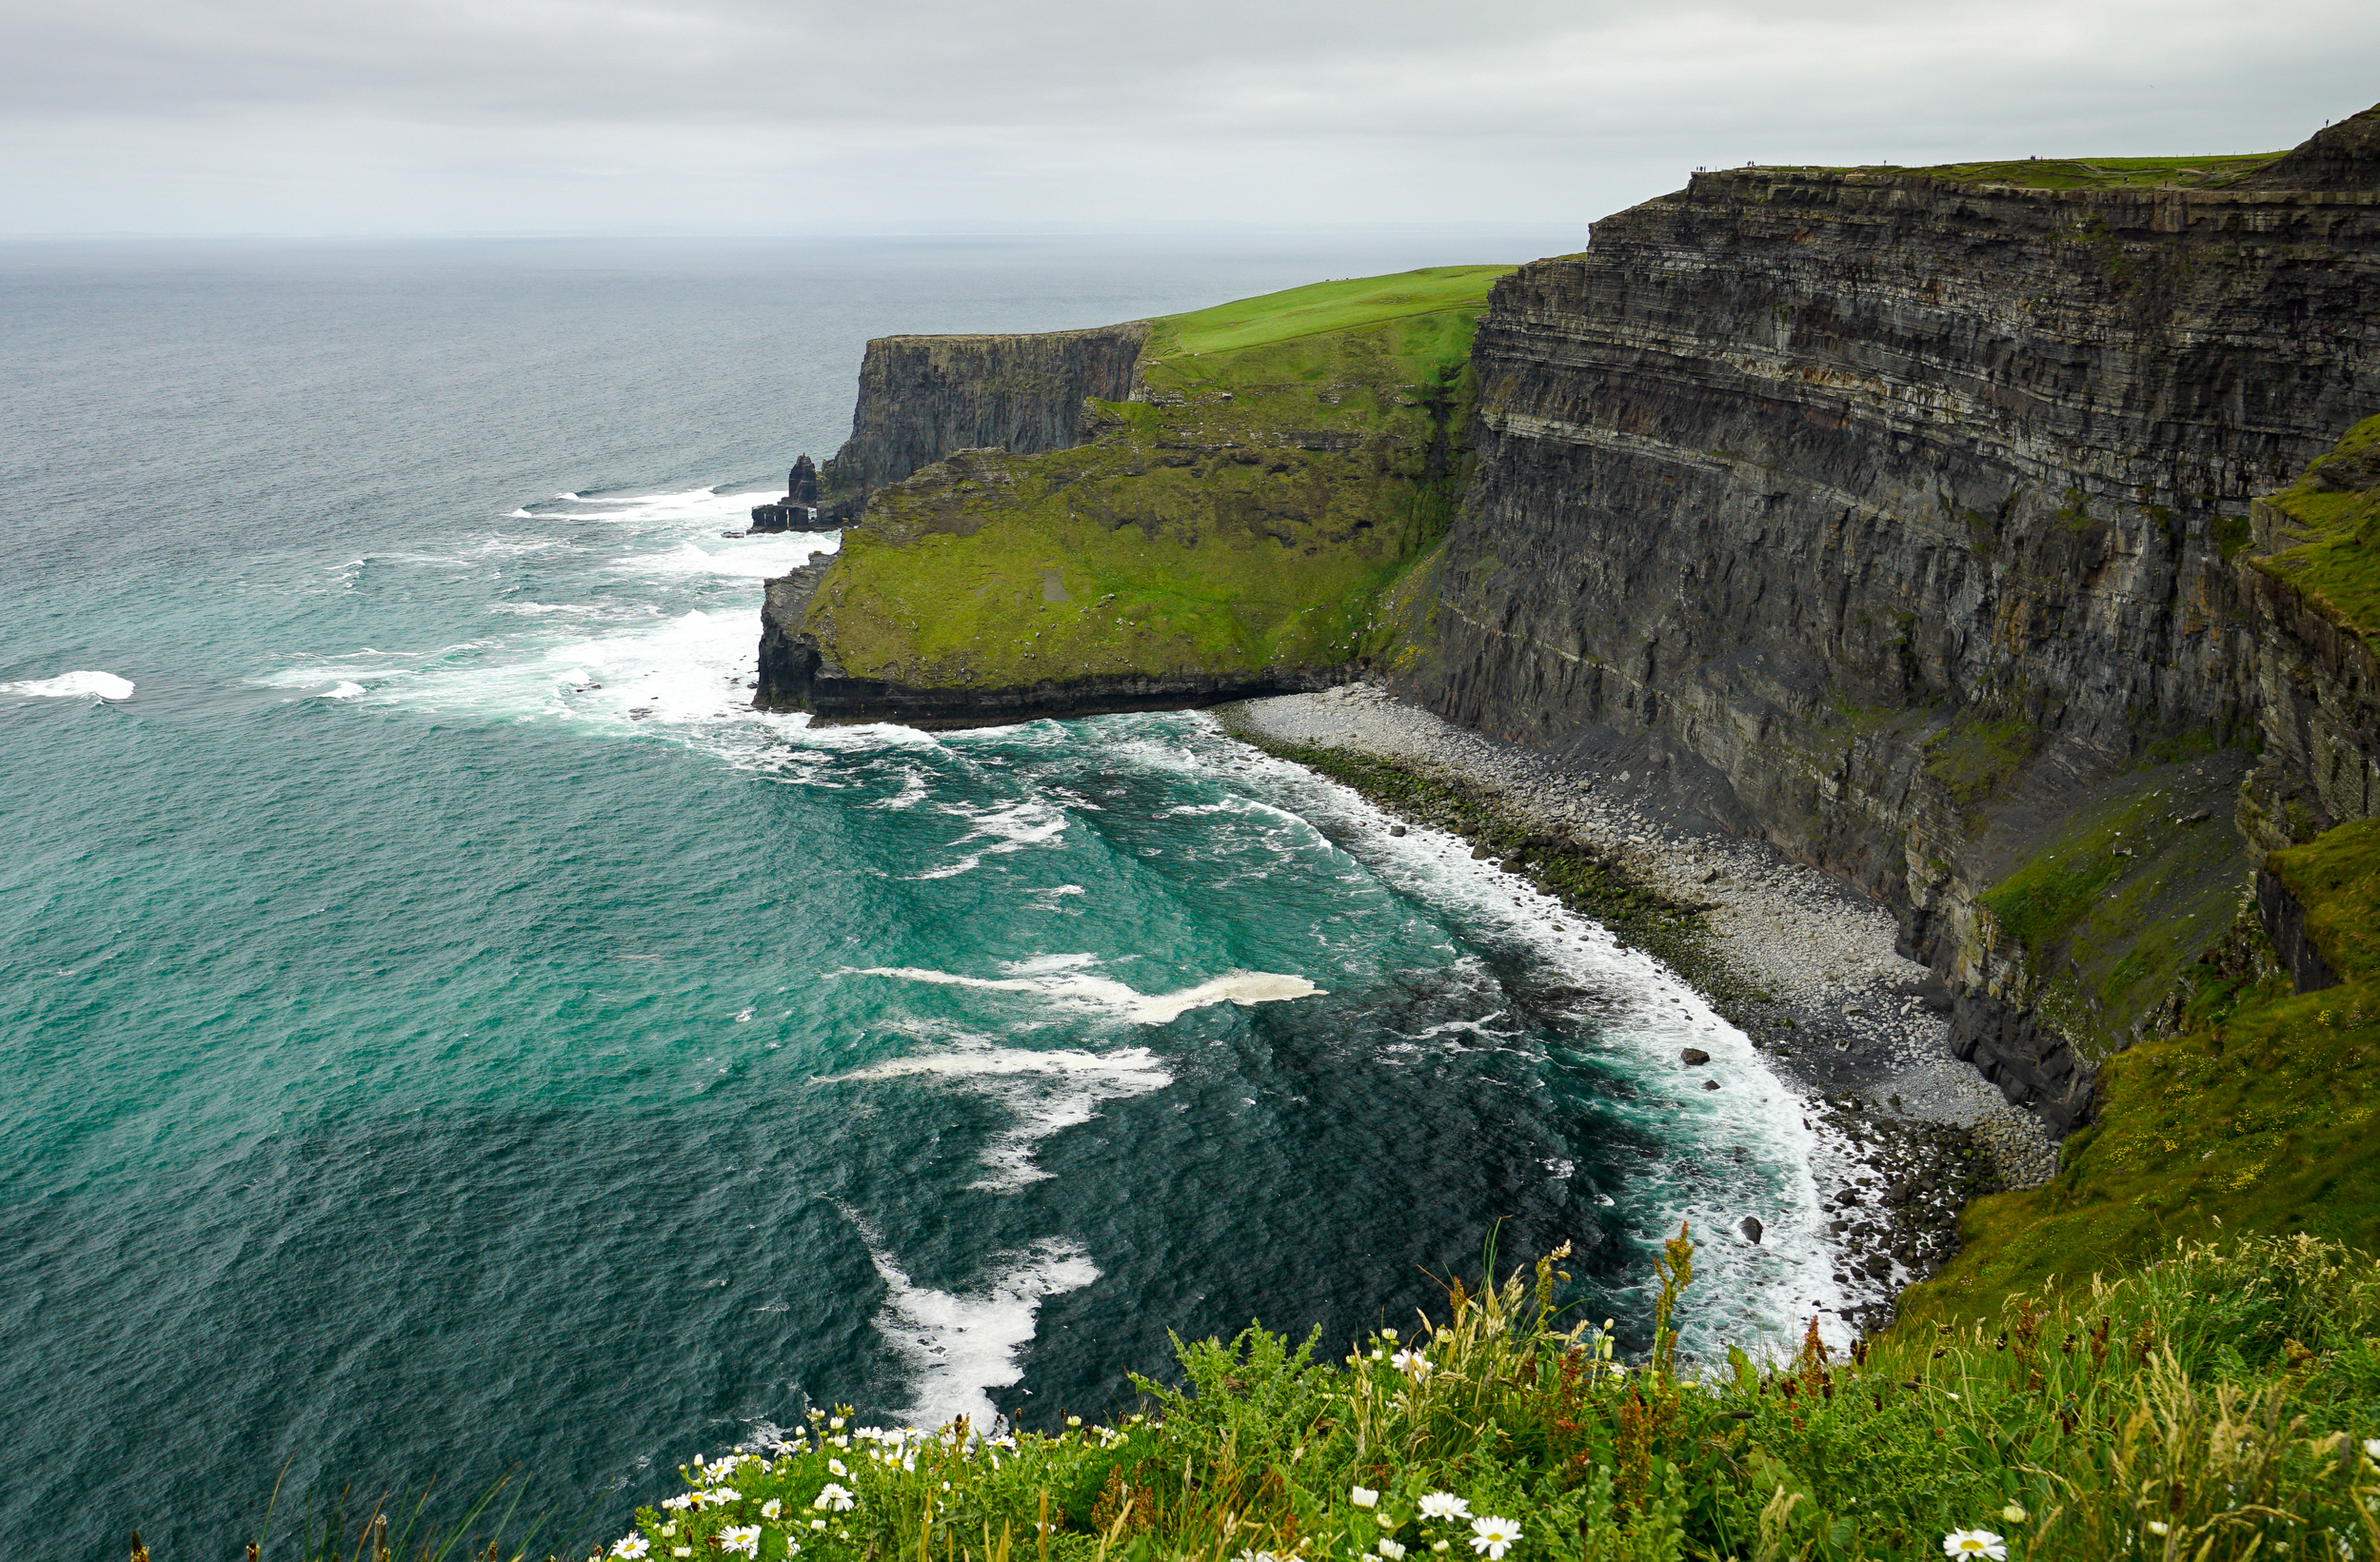 the national parks girl_ireland_sony_irish road trip_cliffs of moher.JPG